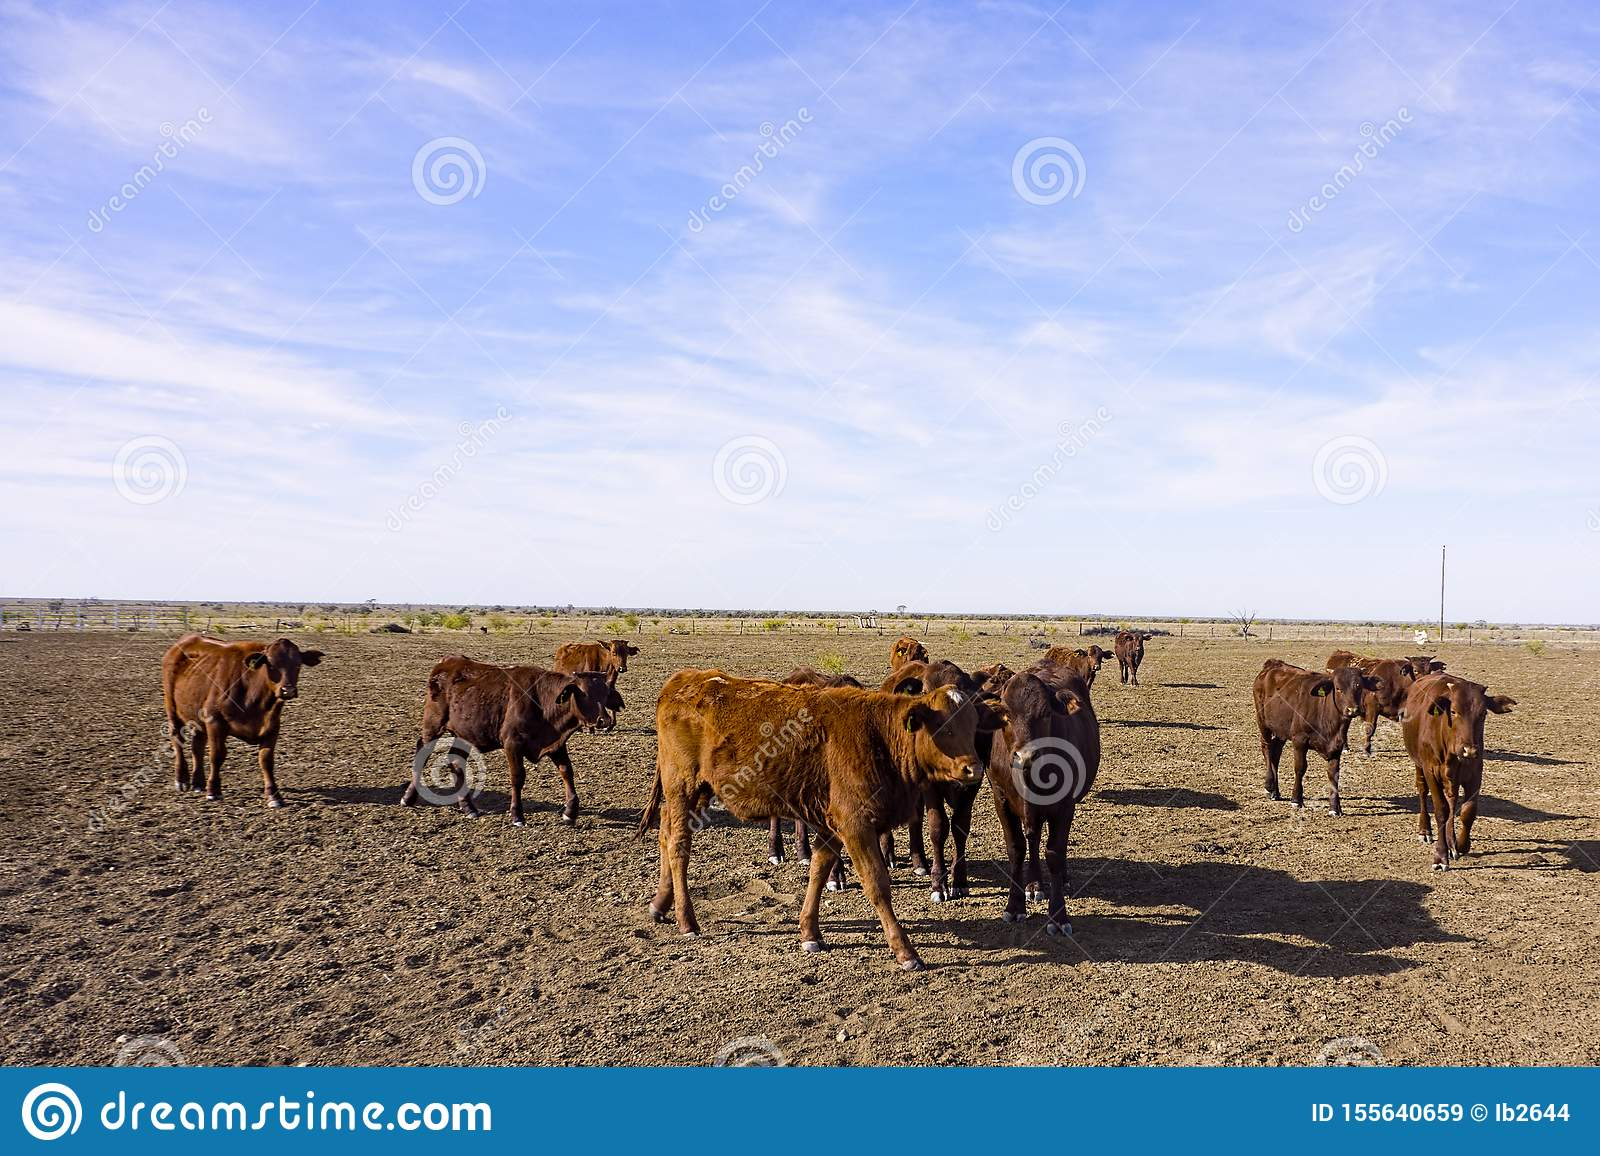 Beef cattle in drought parched paddock